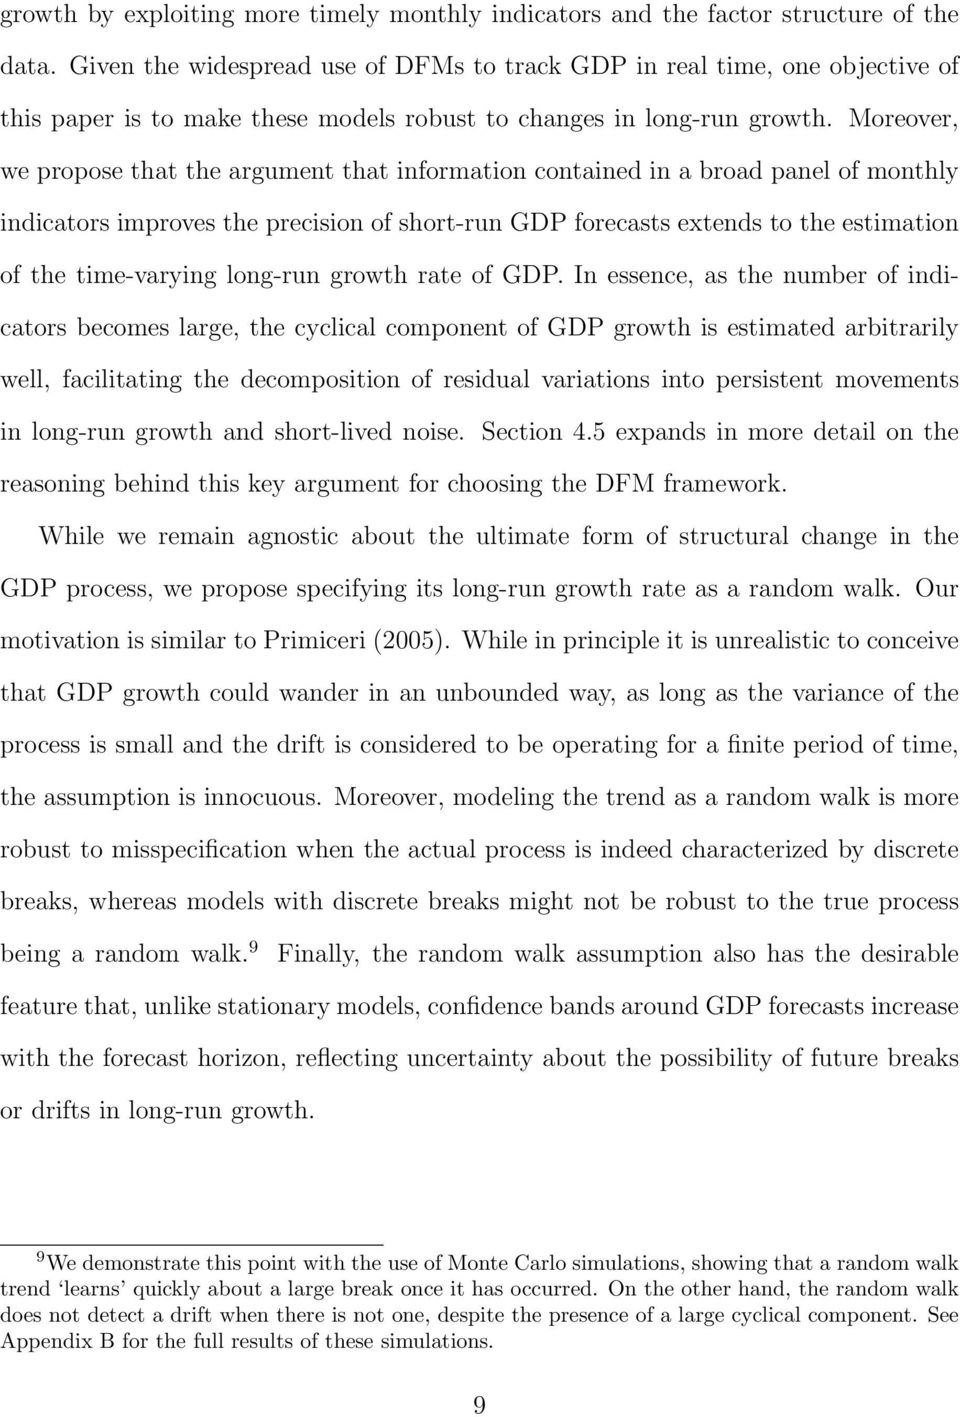 Moreover, we propose that the argument that information contained in a broad panel of monthly indicators improves the precision of short-run GDP forecasts extends to the estimation of the